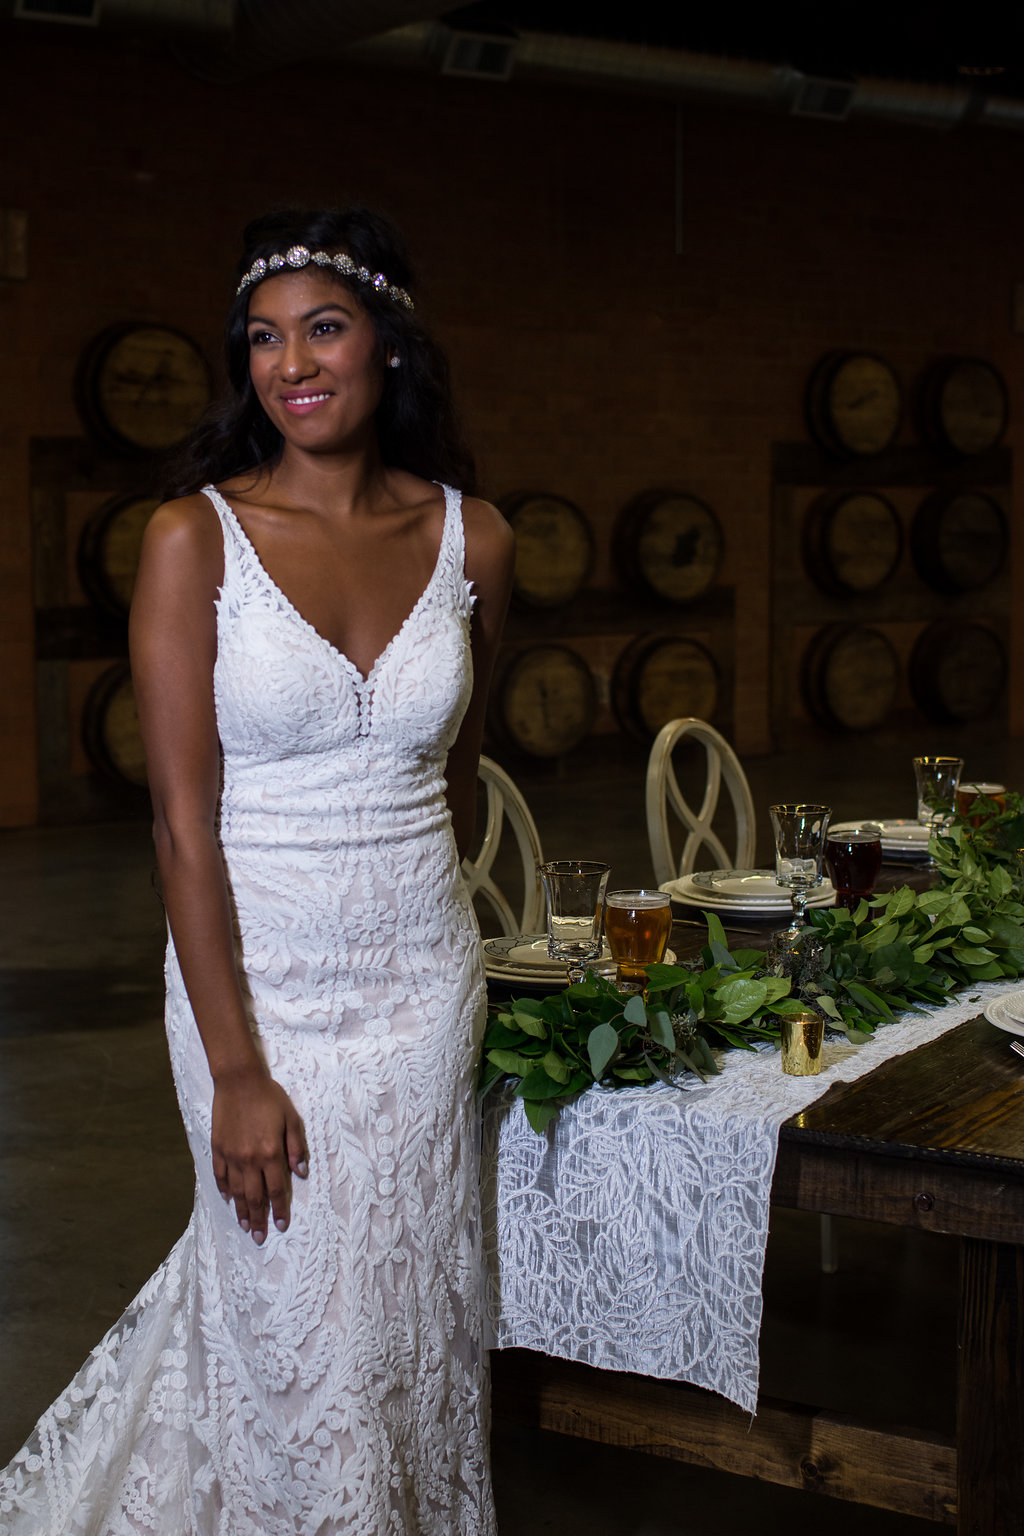 Bridal portrait at food table,part of a Boho Brewery Wedding Styled Shoot at Triple C Barrel Room in Charlotte NC. Dress and Accessories by Paige and Elliot.